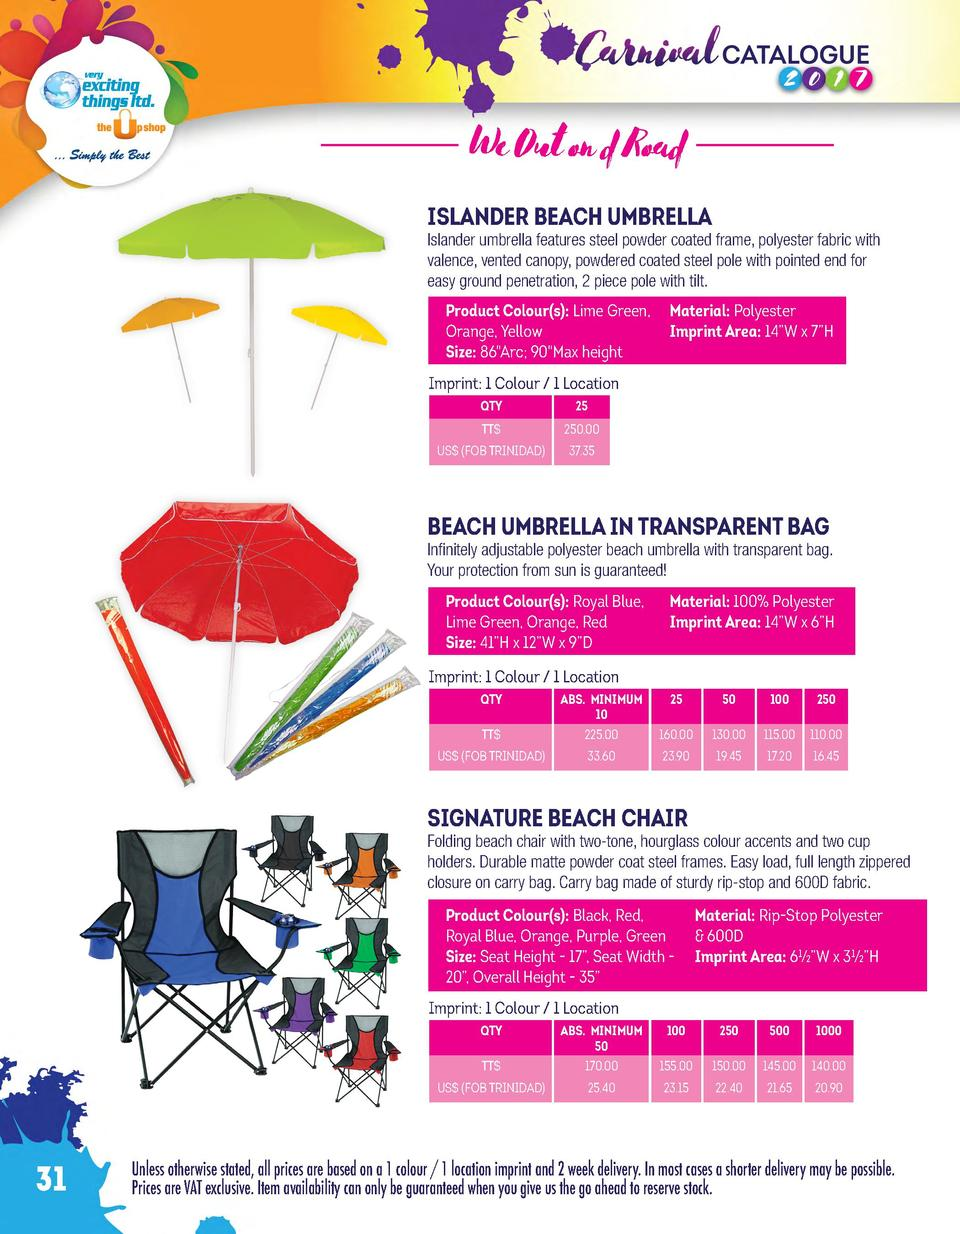 We Out on d Road ISLANDER BEACH UMBRELLA  Islander umbrella features steel powder coated frame, polyester fabric with vale...